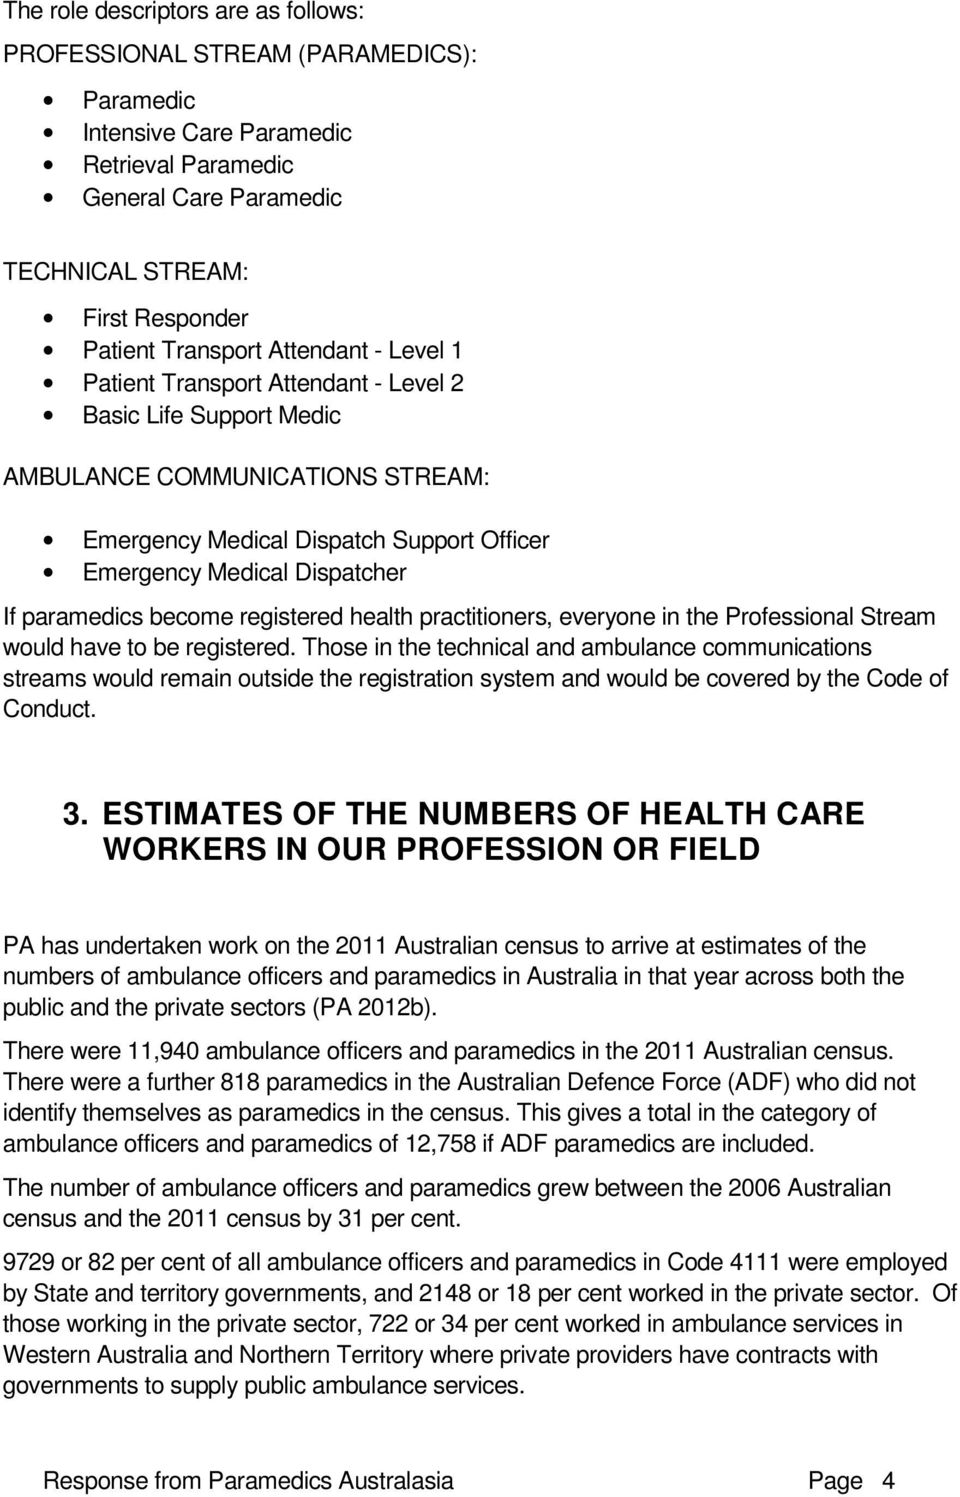 If paramedics become registered health practitioners, everyone in the Professional Stream would have to be registered.